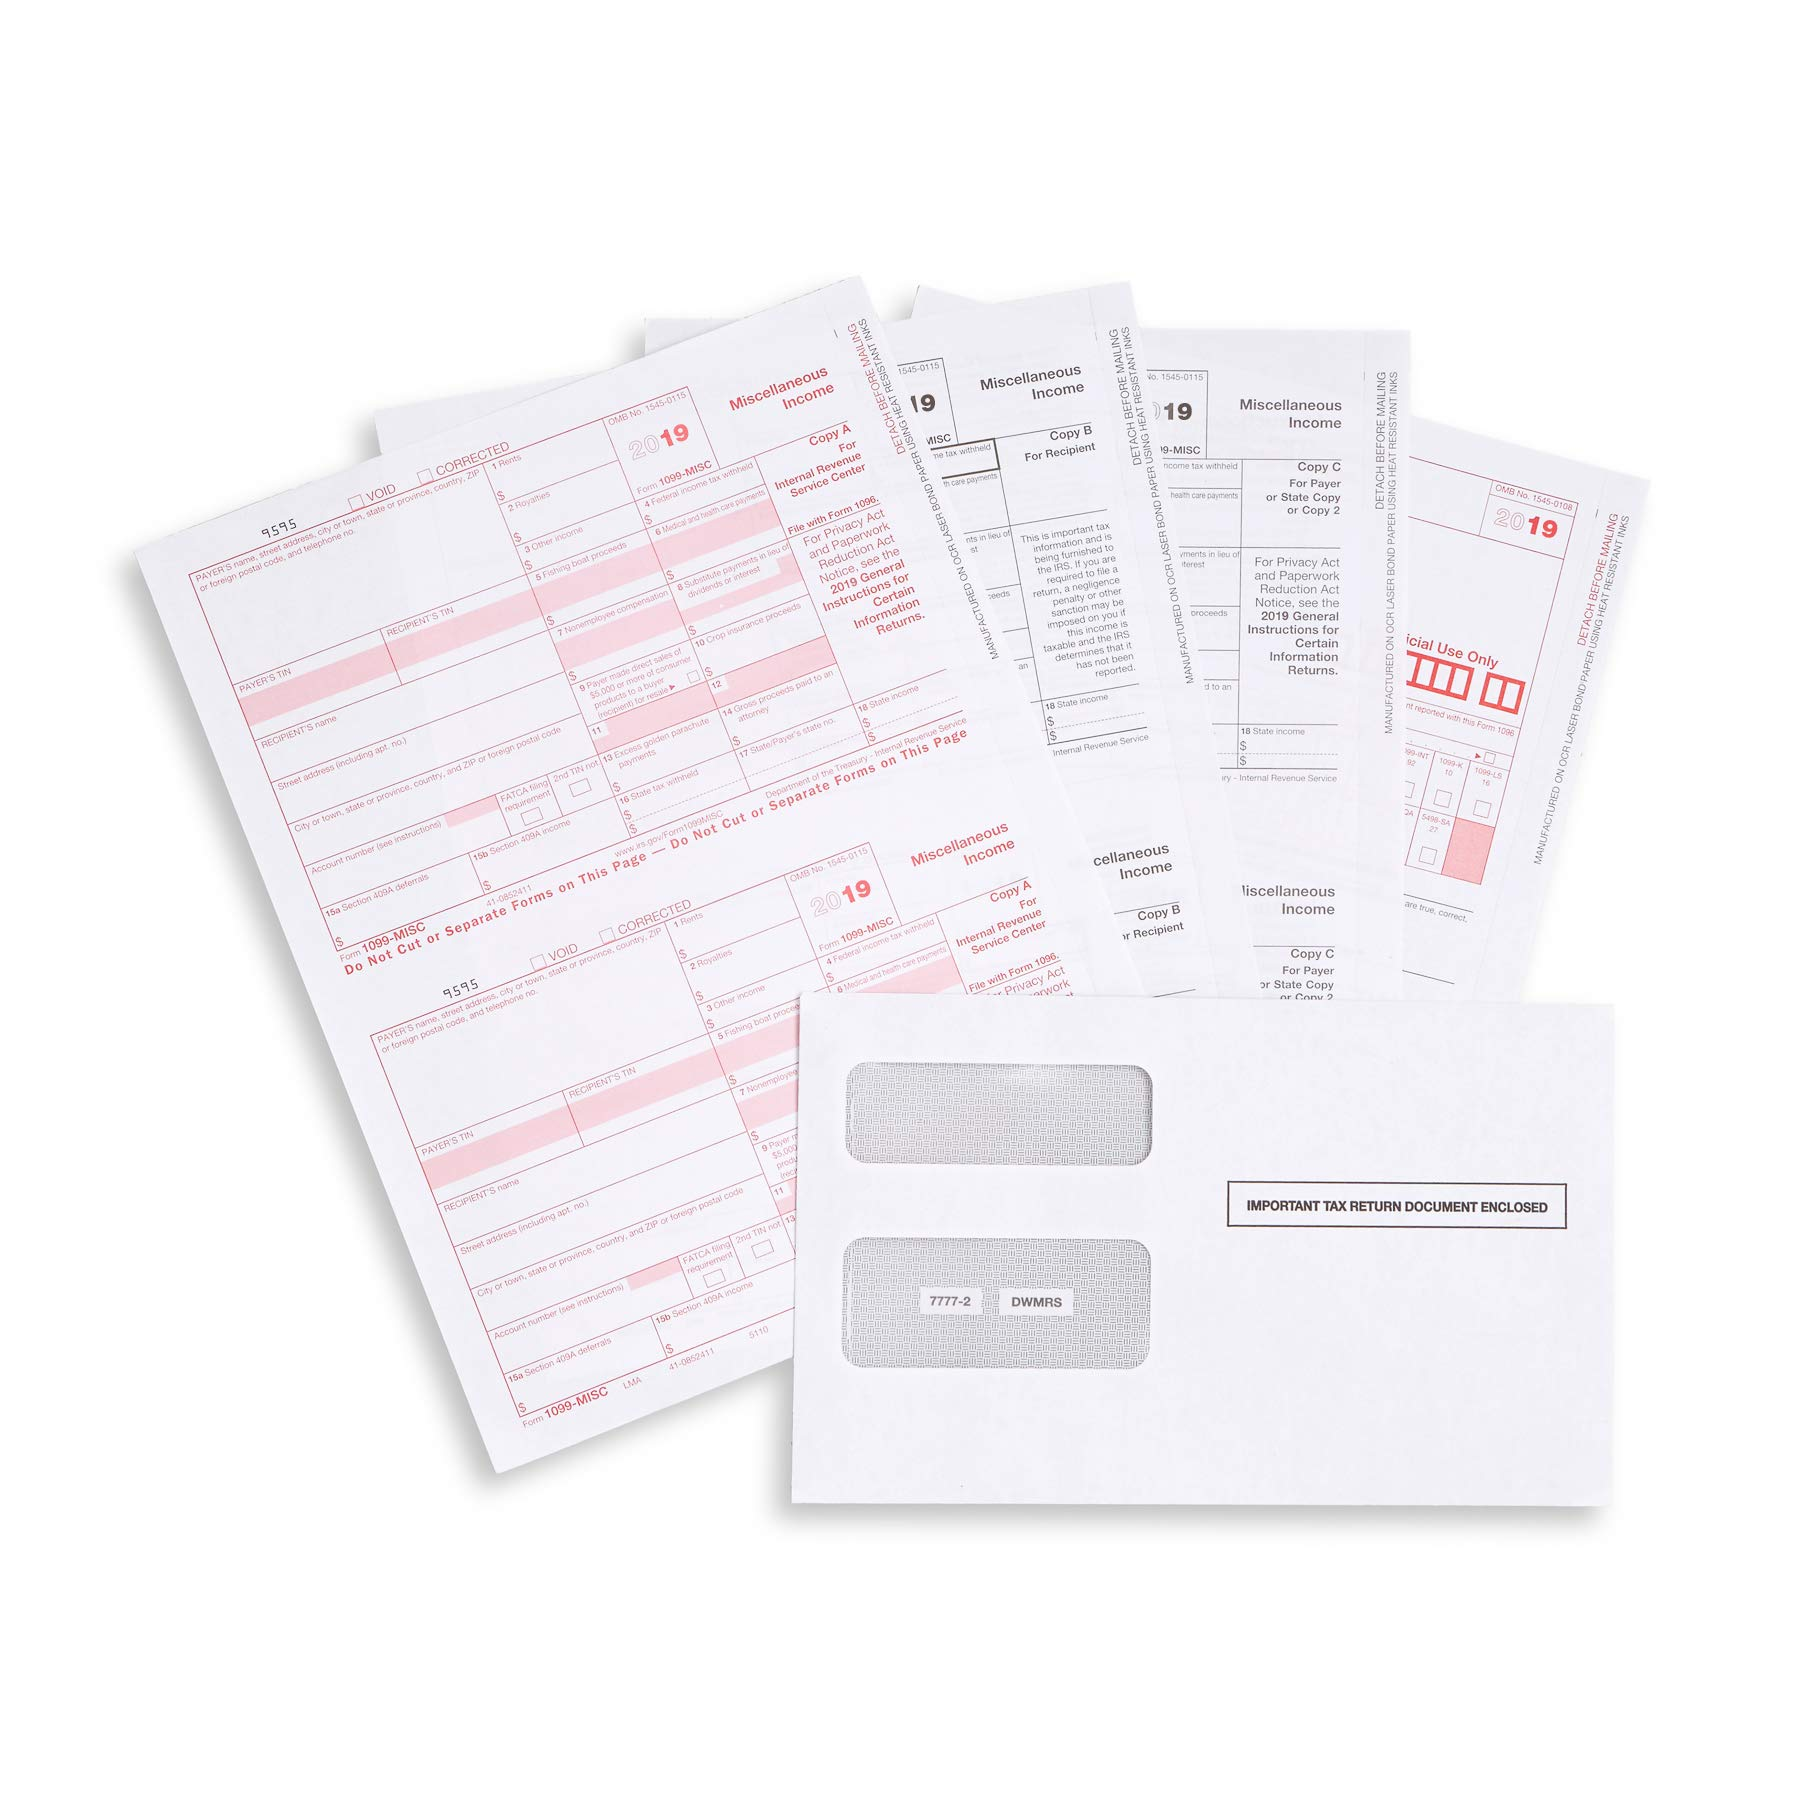 1099 MISC Forms 2019, 4 Part Tax Forms Kit, 50 Vendor Kit of Laser Forms Designed for QuickBooks and Accounting Software, 50 Self Seal Envelopes Included by Blue Summit Supplies